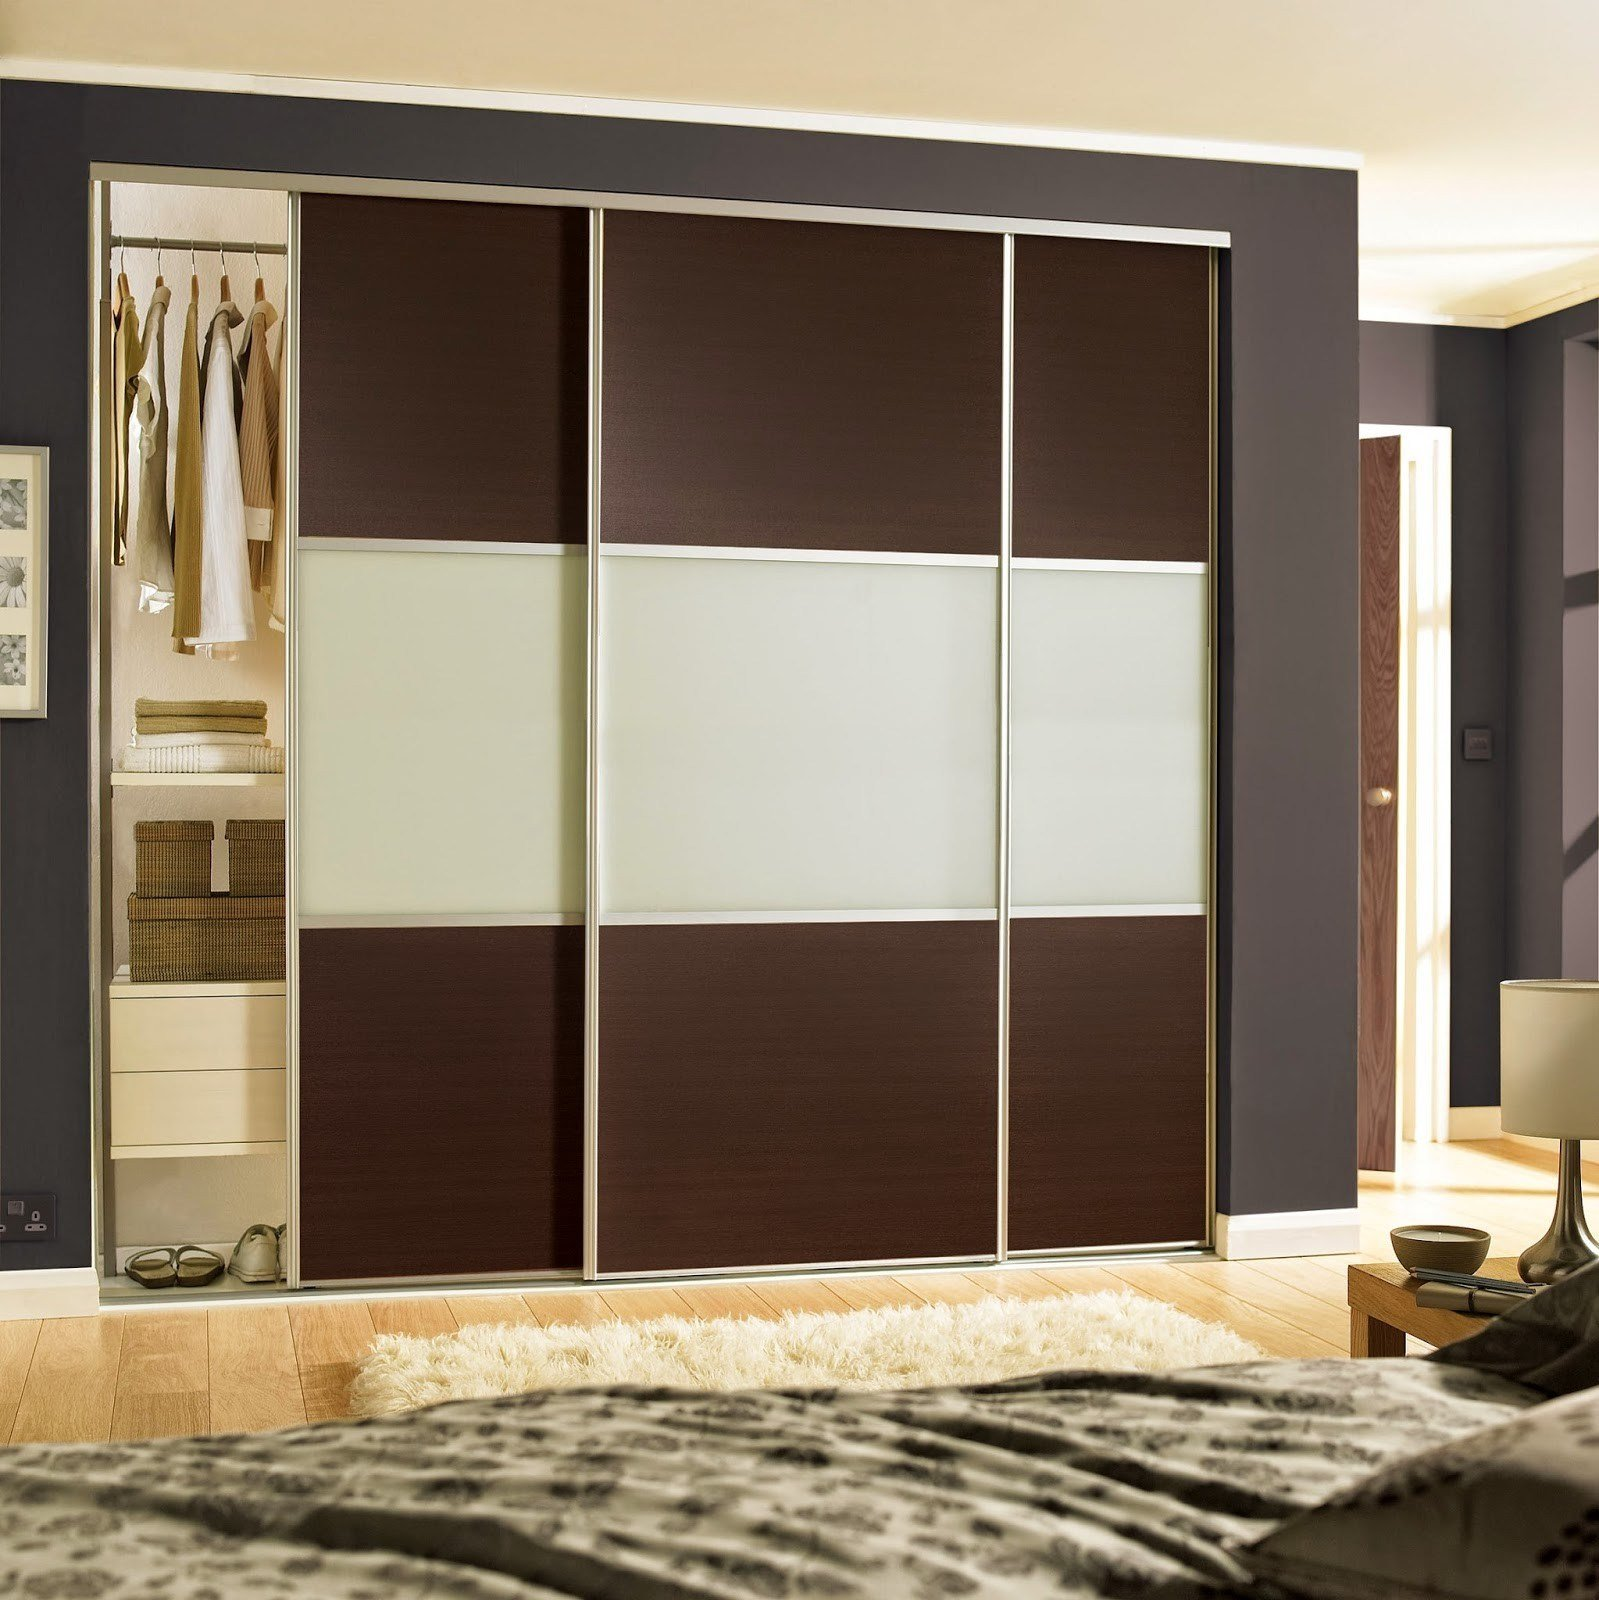 Best Of Cheap Wardrobe Doors For Sale Badotcom Com With Pictures